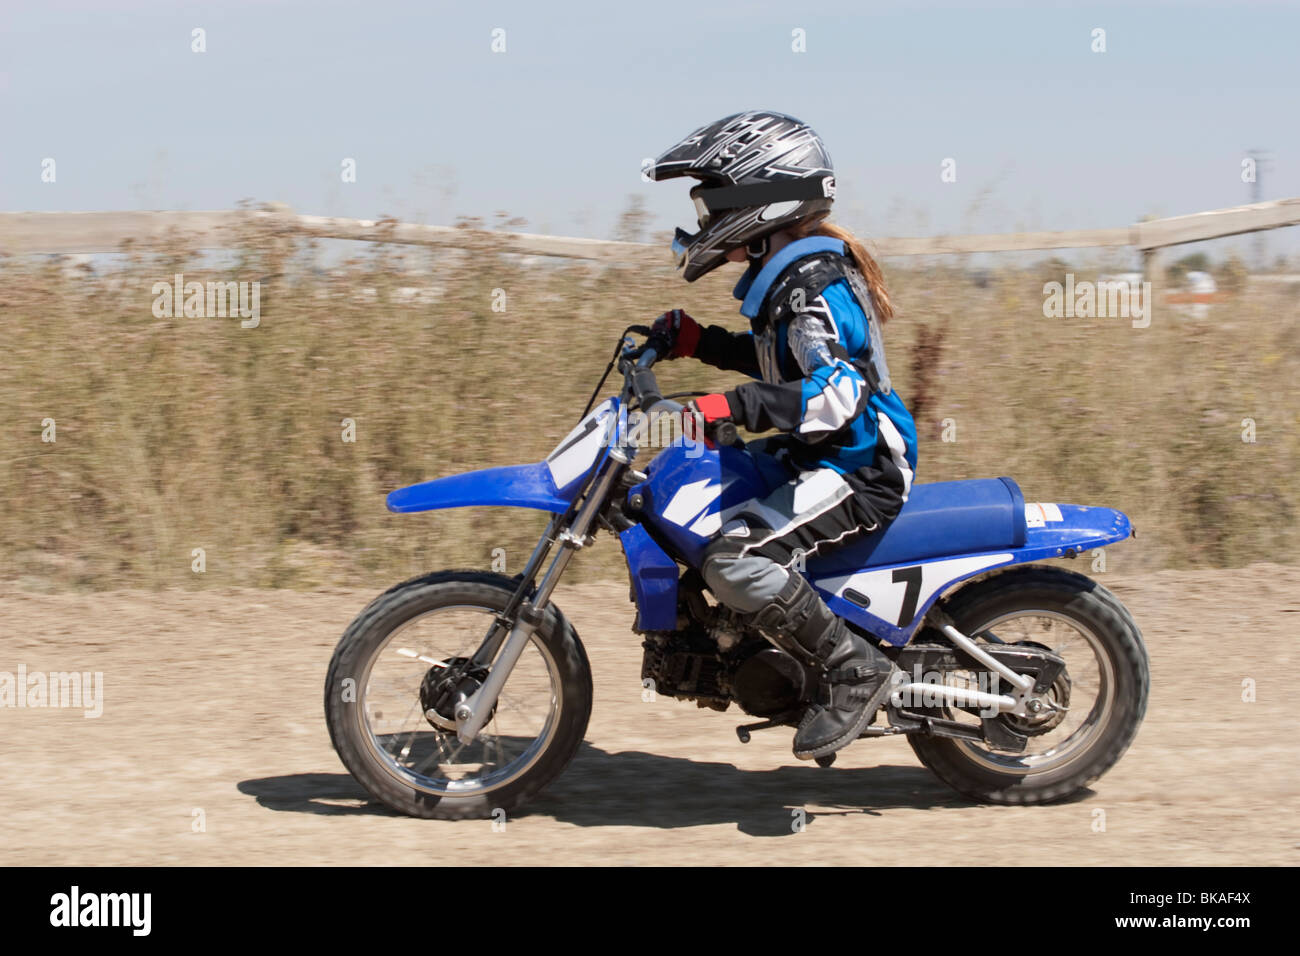 Girl On A Motorcross Bike - Stock Image